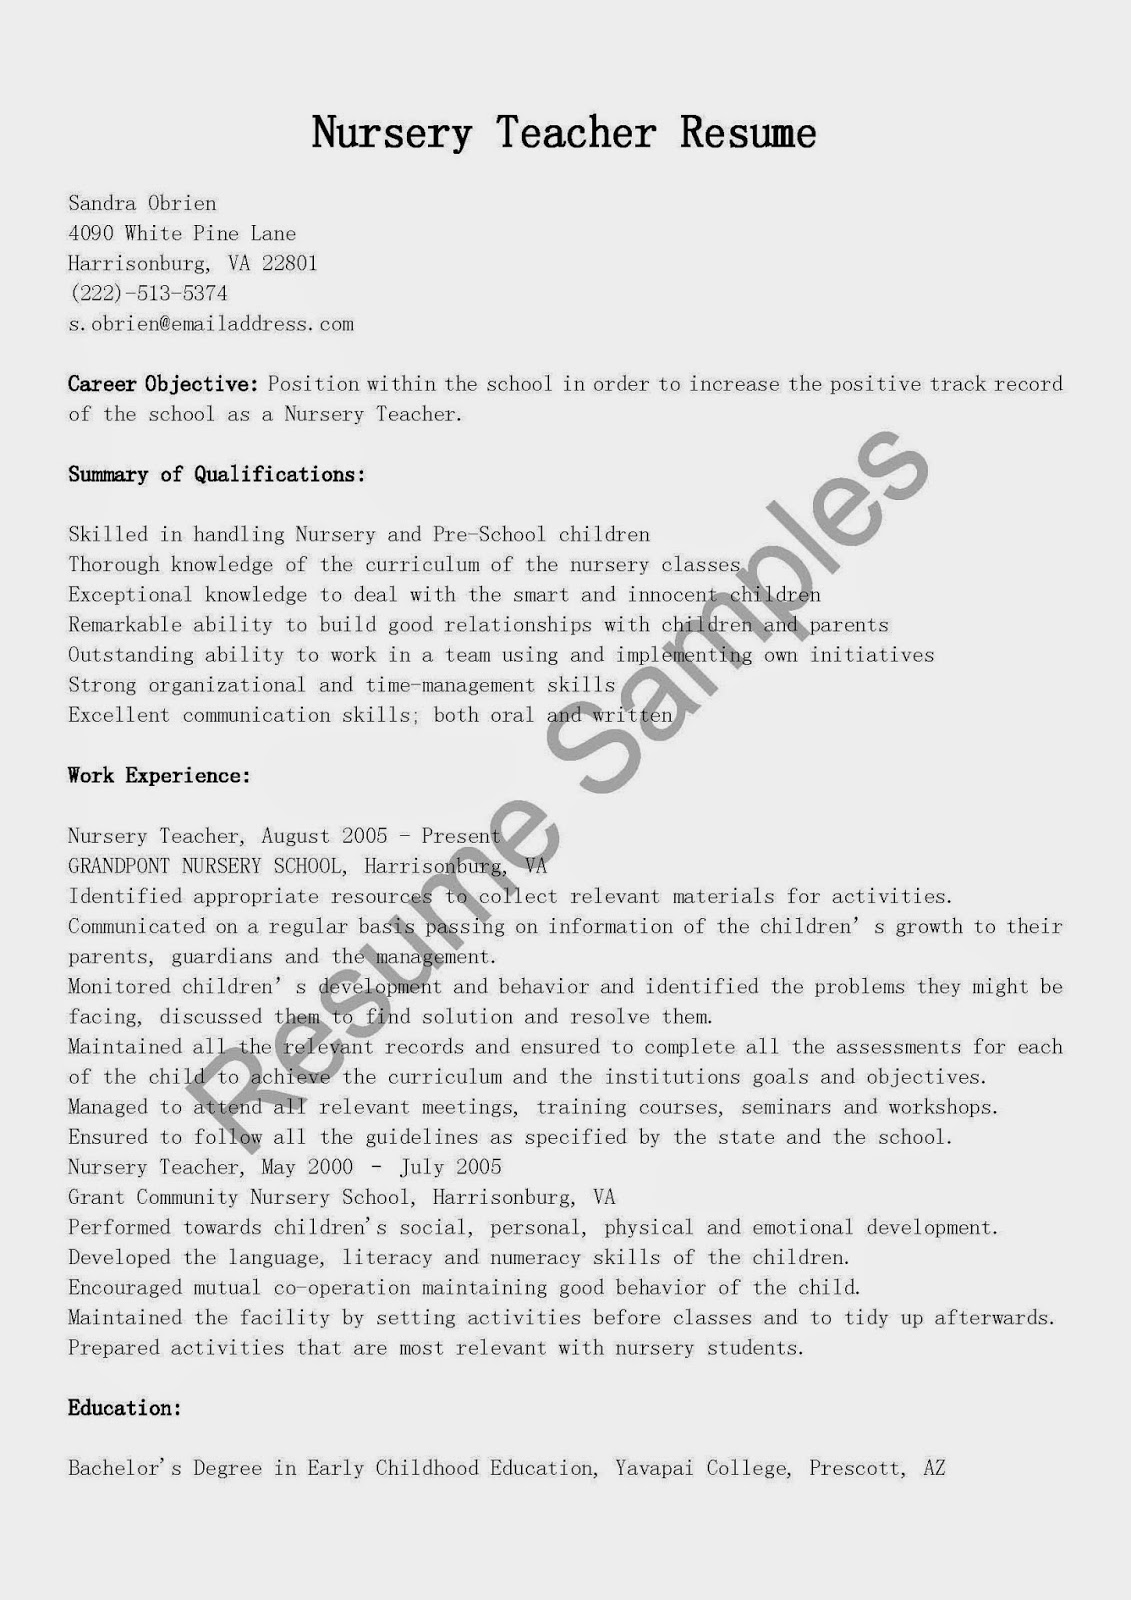 Sample Teacher Resume Templates Resume Samples Nursery Teacher Resume Sample